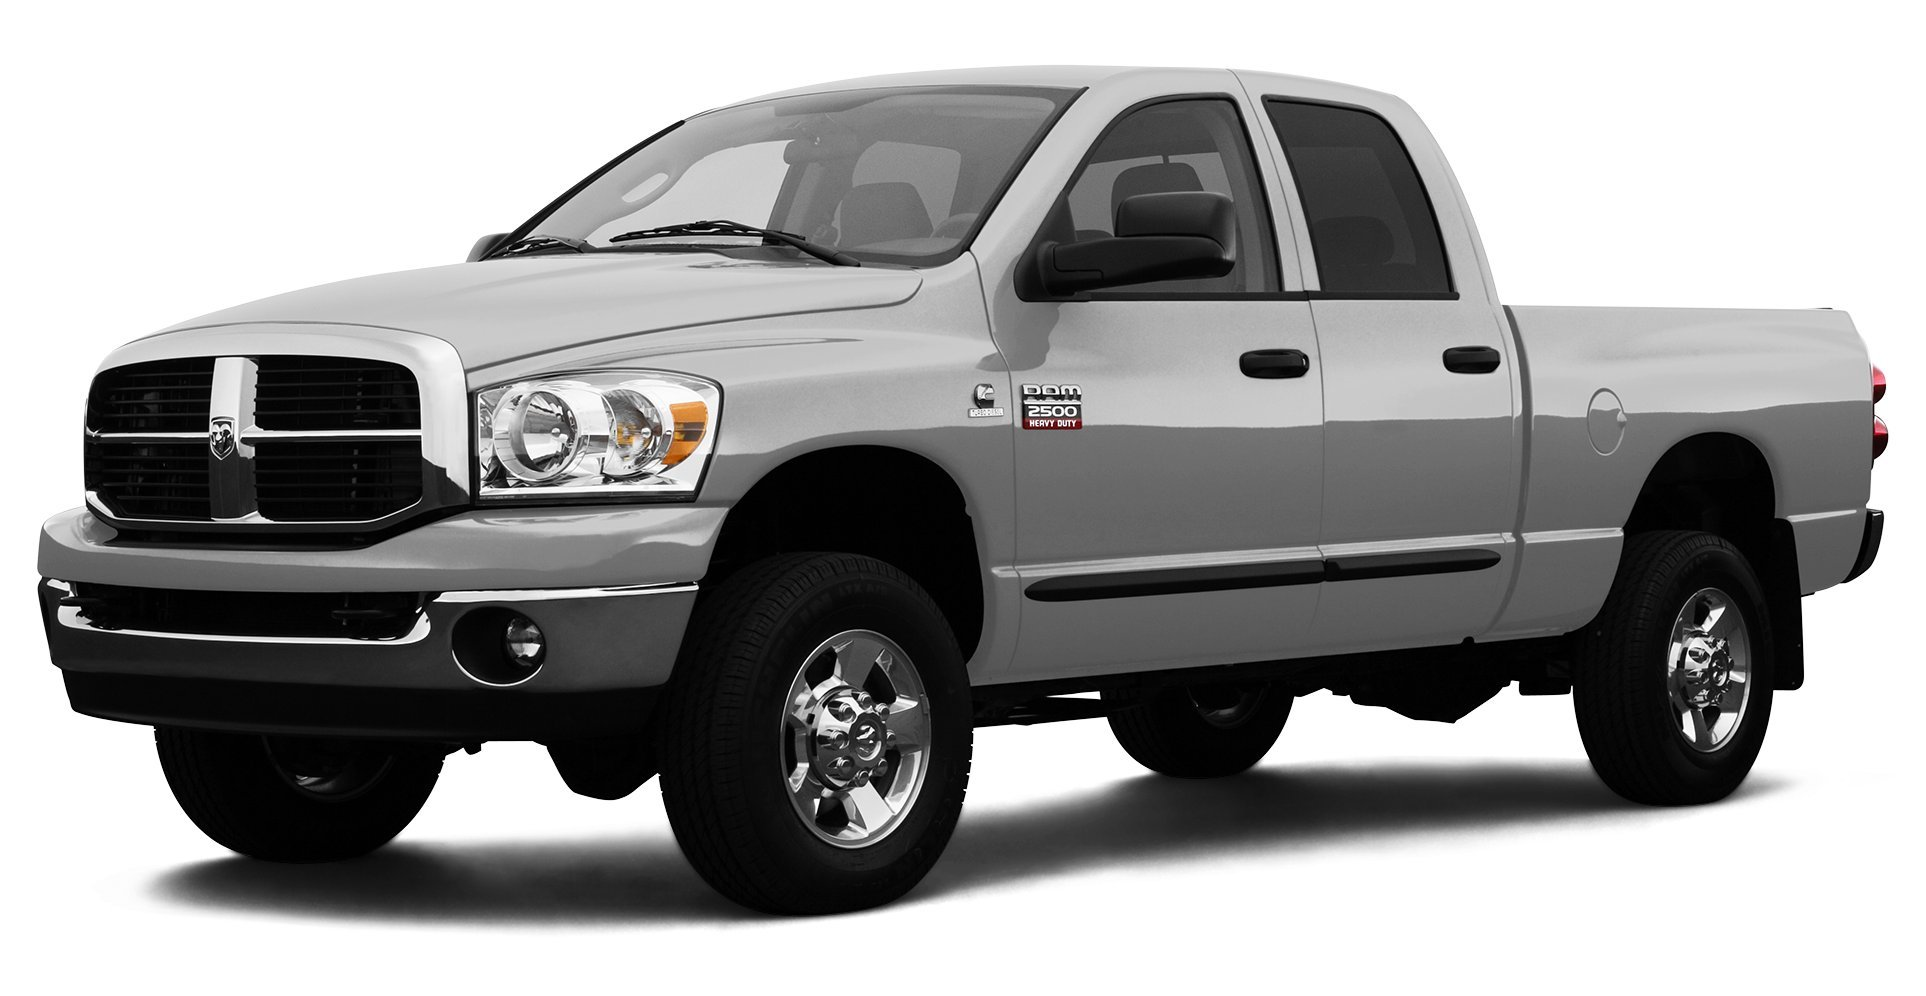 2007 dodge ram 2500 reviews images and specs vehicles. Black Bedroom Furniture Sets. Home Design Ideas